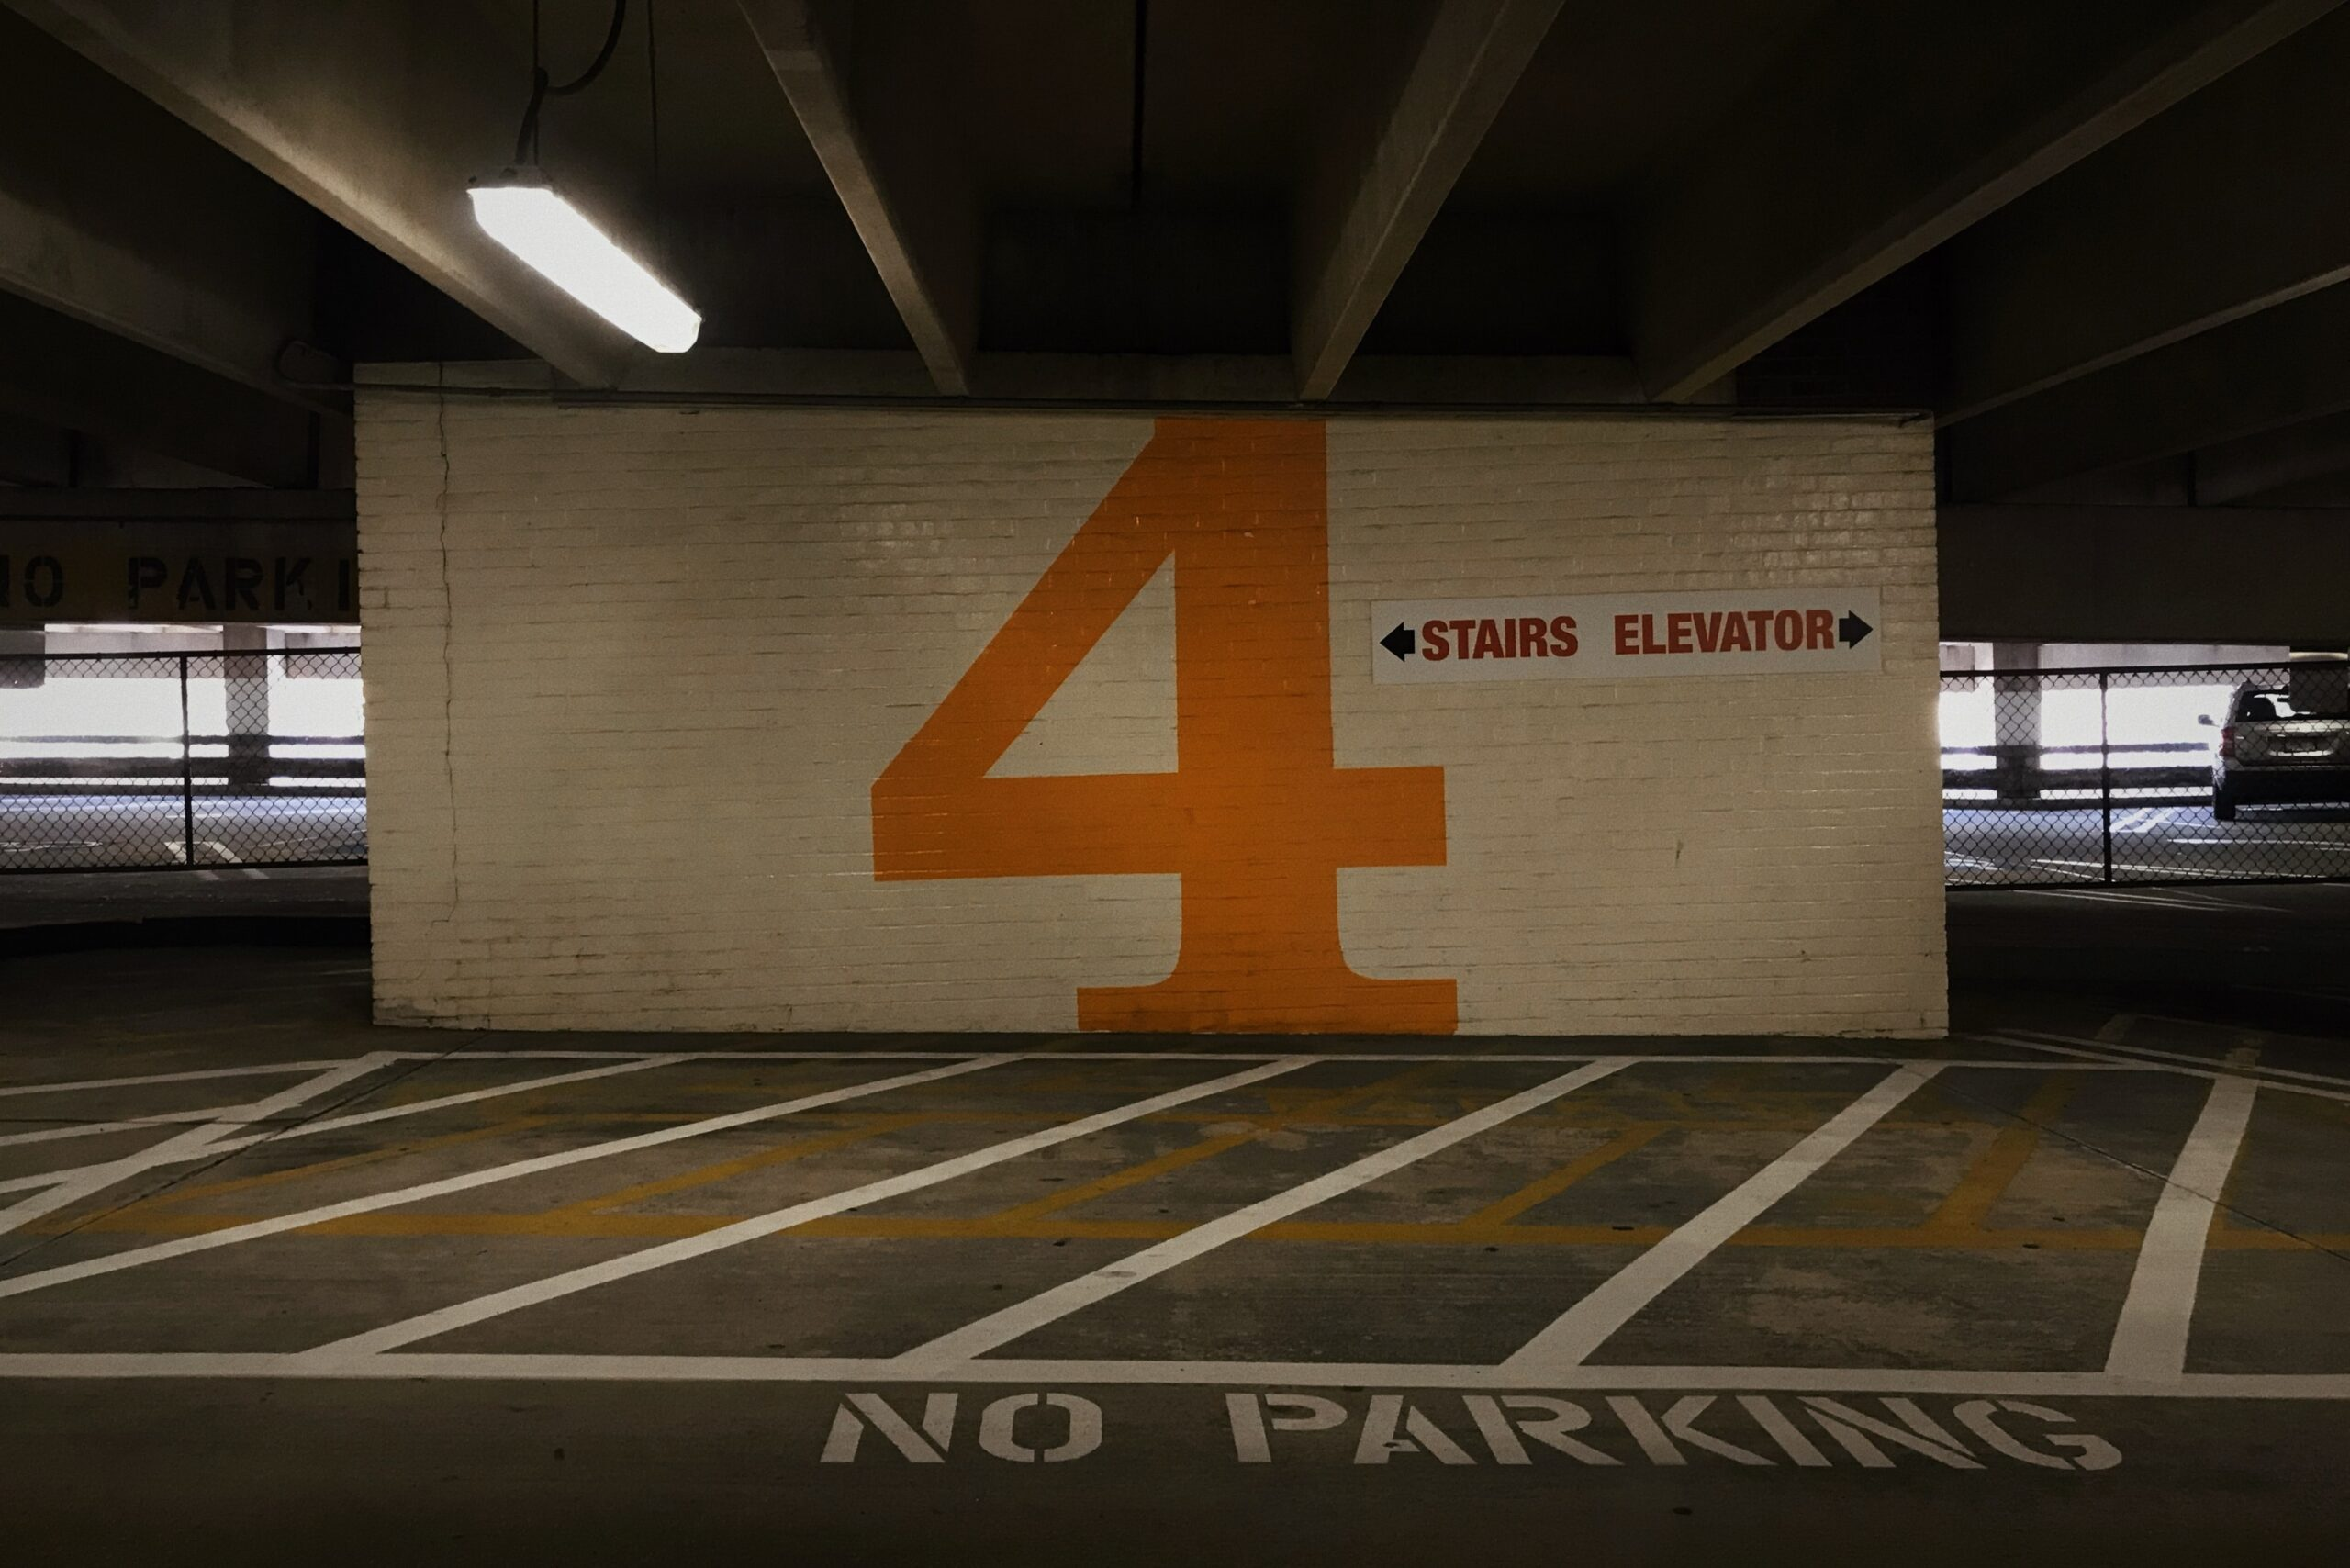 Parking garage with orange number 4 emblazoned on brick wall and words stairs elevator also on wall.